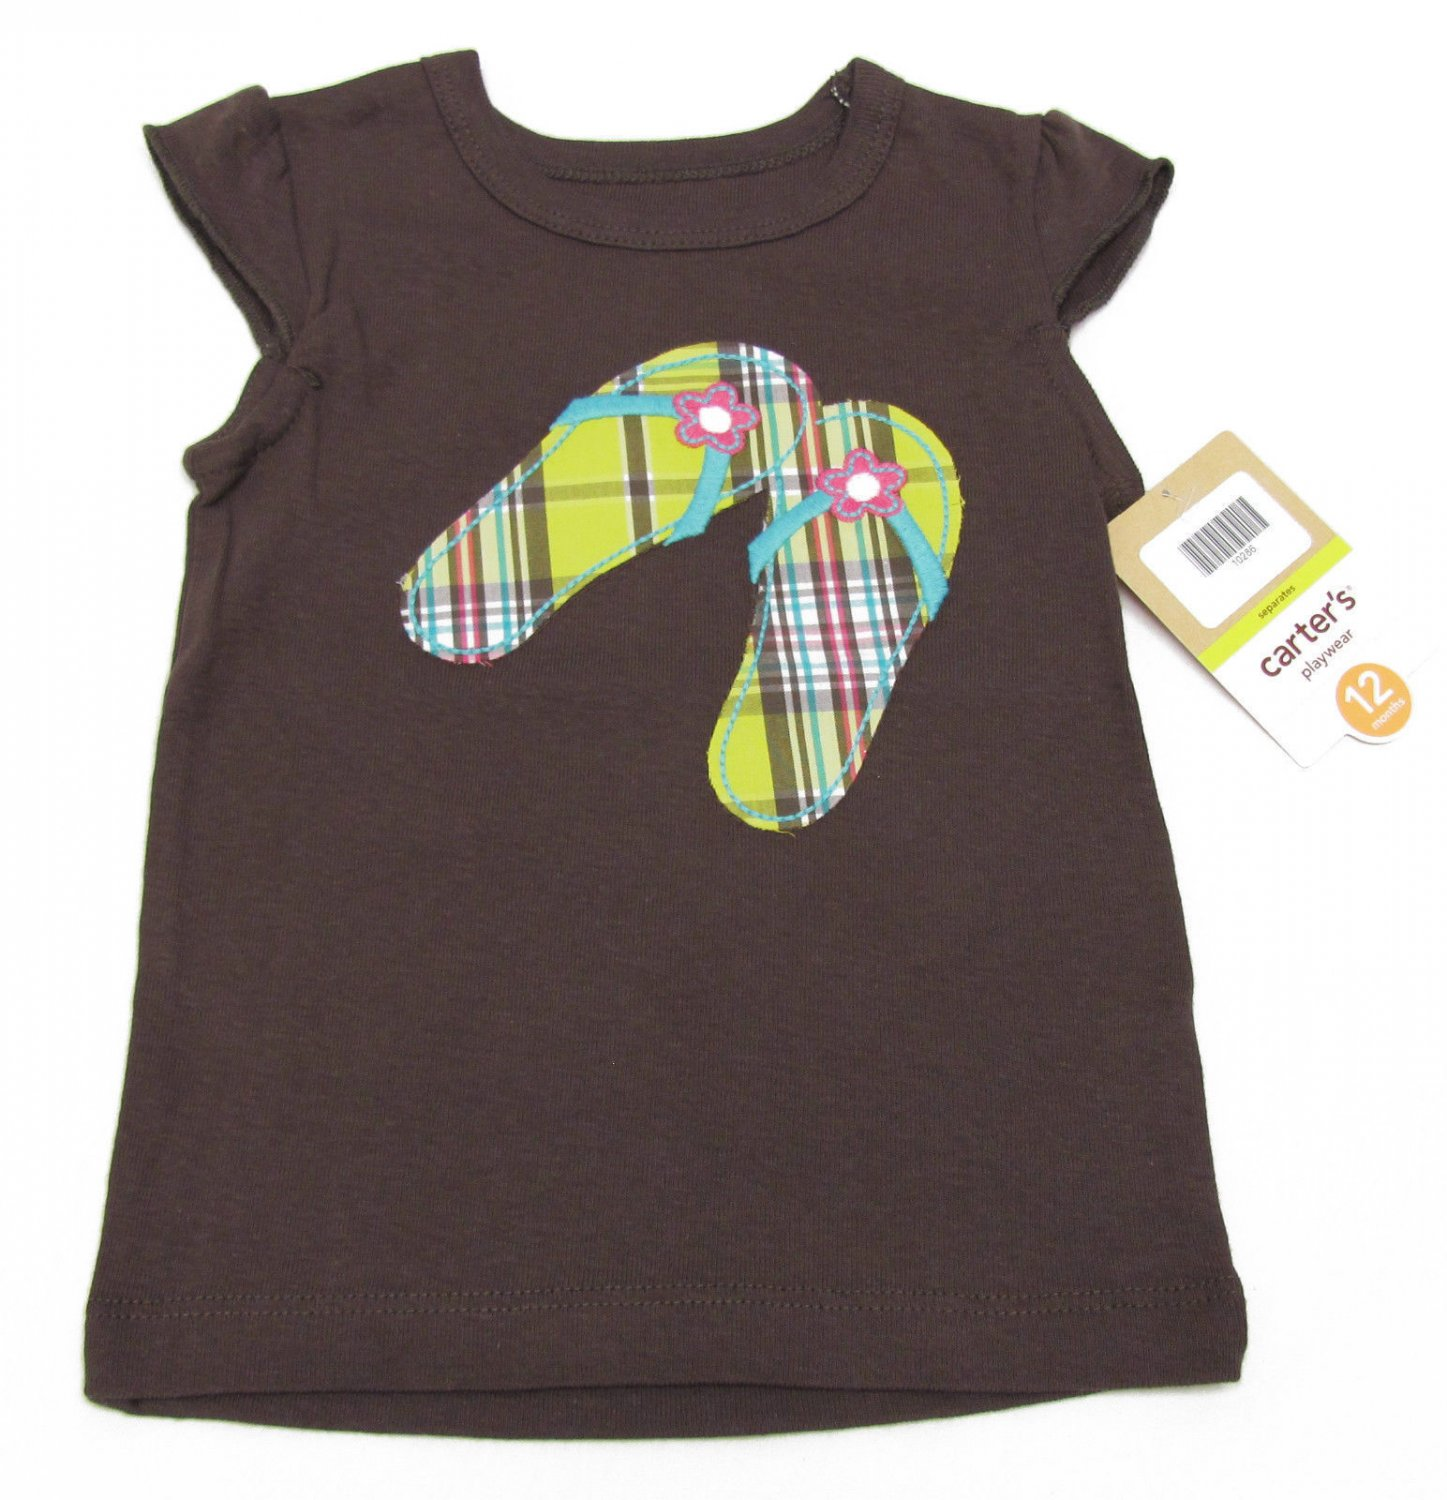 Carters Girls 12 Months T-shirt Dark Brown Summer Tee Flip Flops Design Baby